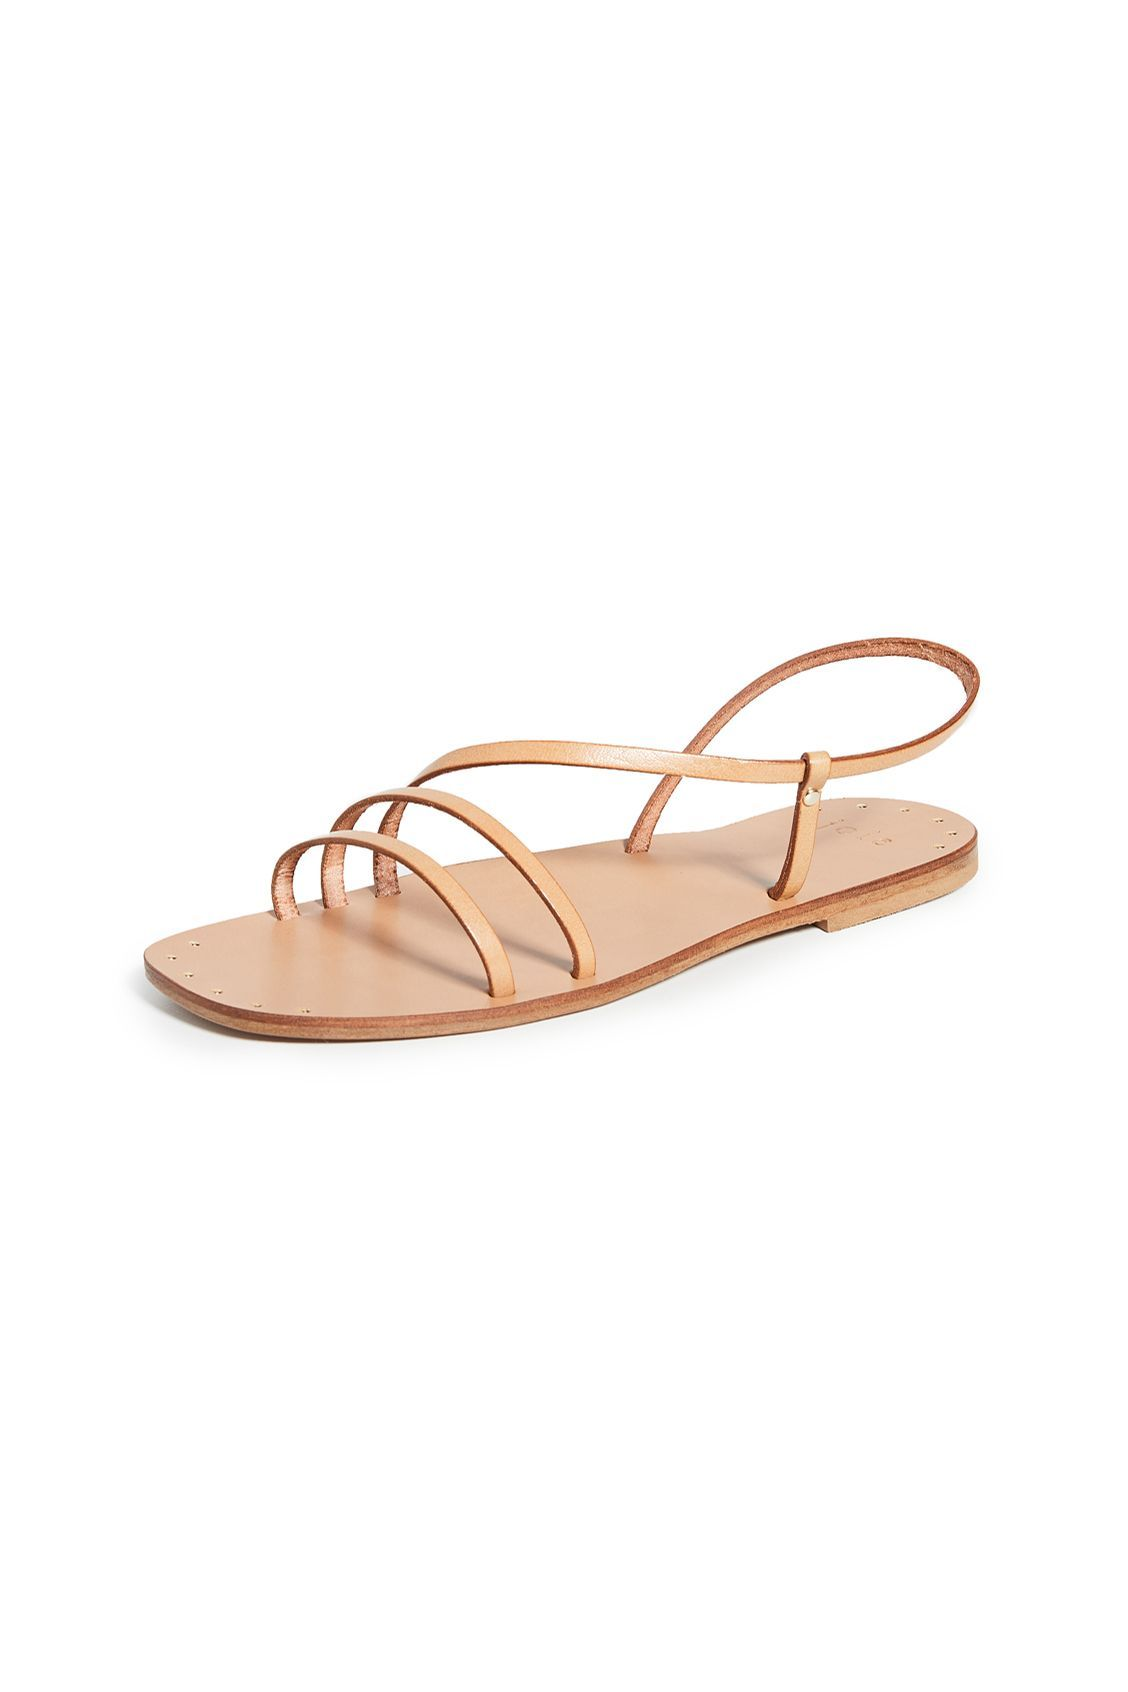 Sandal Trends 2020.Baja Flat Sandals